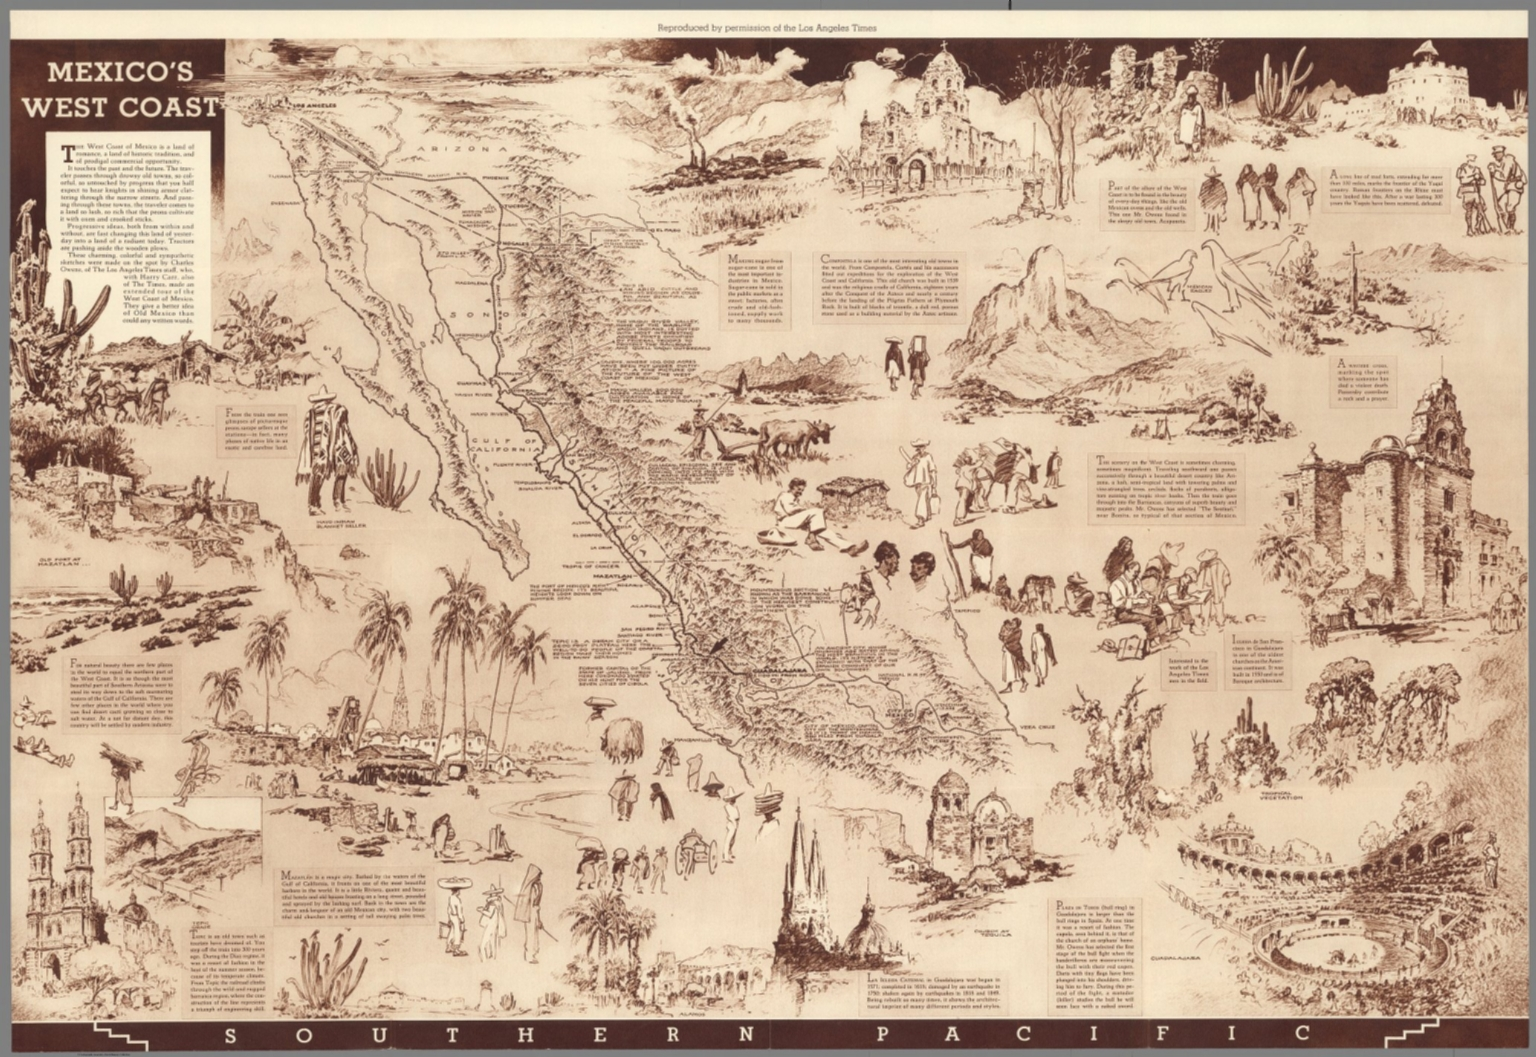 Mexico's West coast - David Rumsey Historical Map Collection on mexican west coast, map of mexico's pacific coast, map of mexico's east coast, map of mexico coast com, map of mexico's gulf coast, western mexico coast,